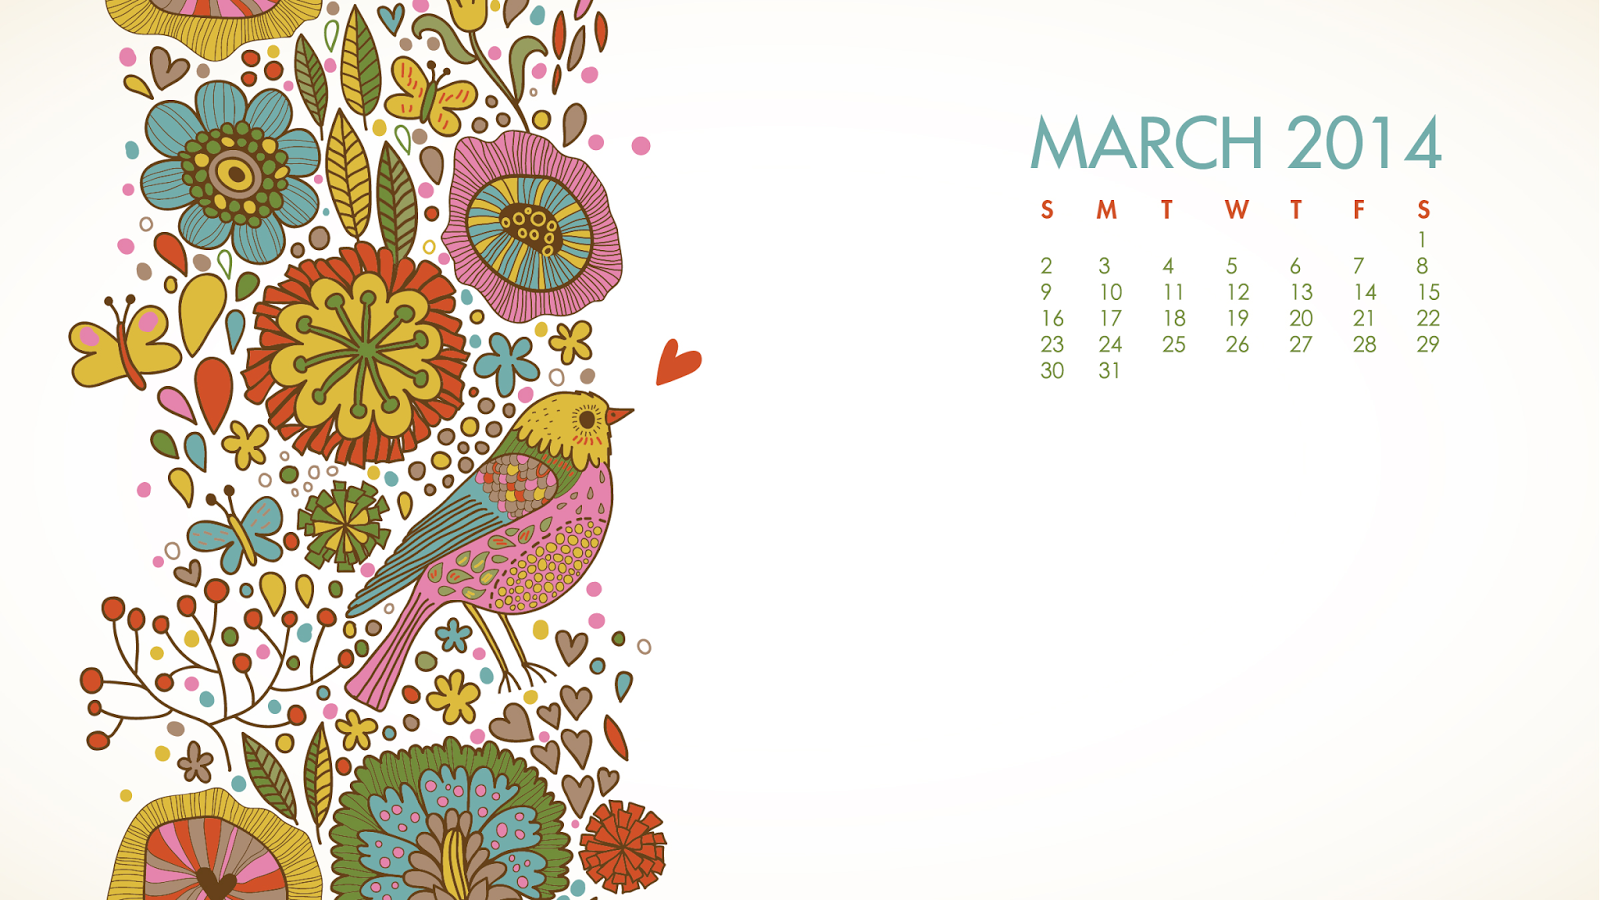 FREE MARCH 2014 DESKTOP CALENDARS